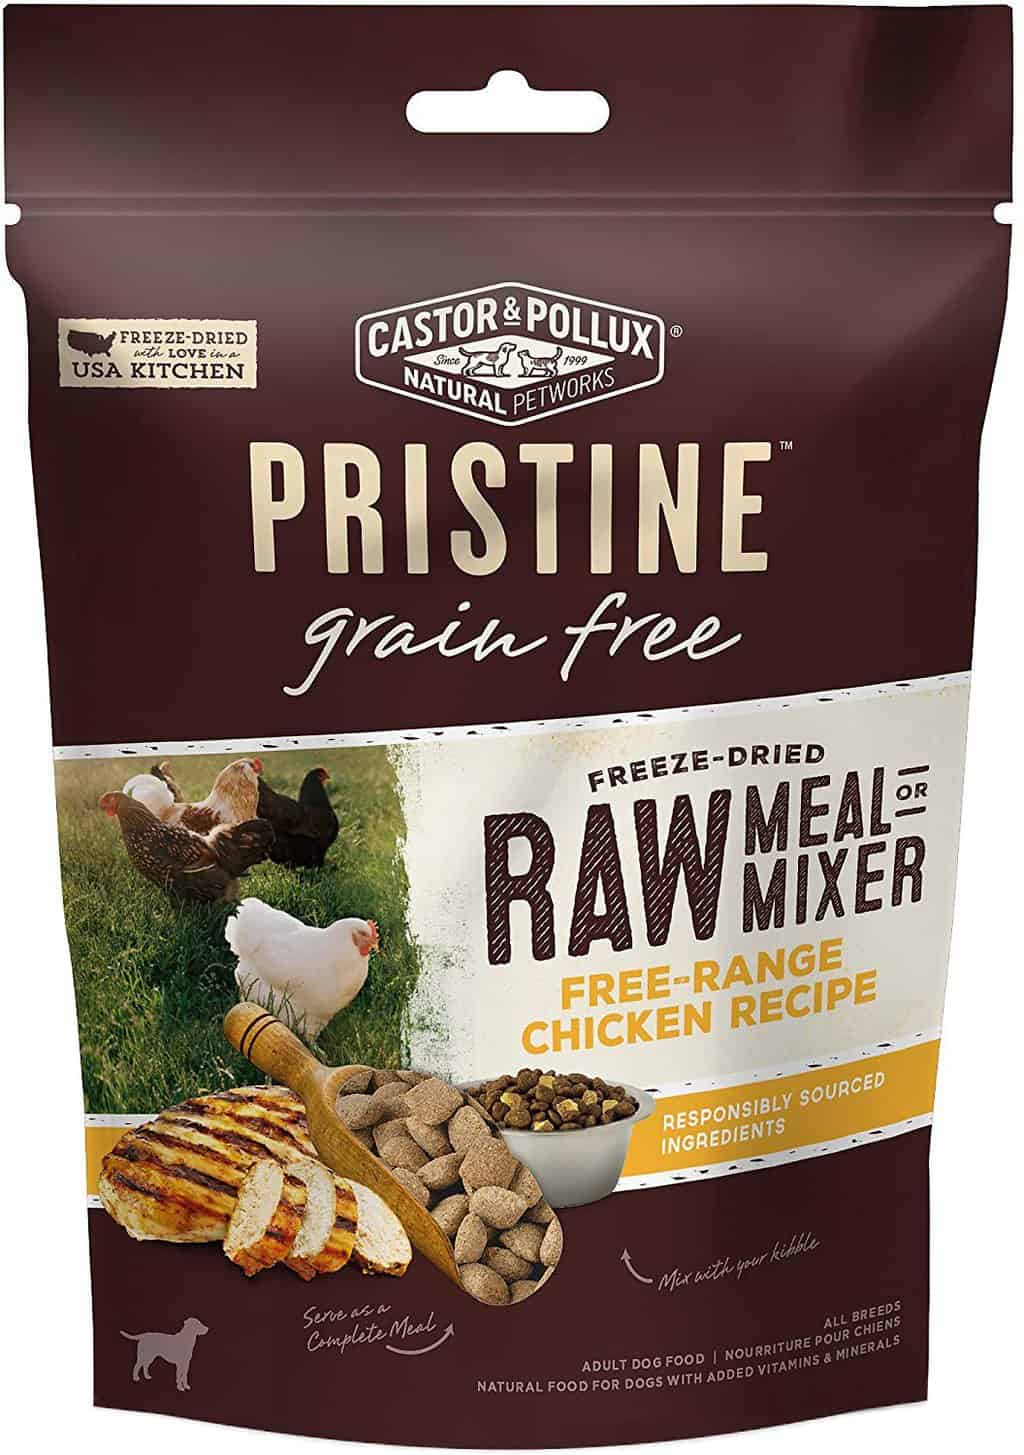 Castor and Pollux Dog Food: 2021 Review, Recalls & Coupons 19